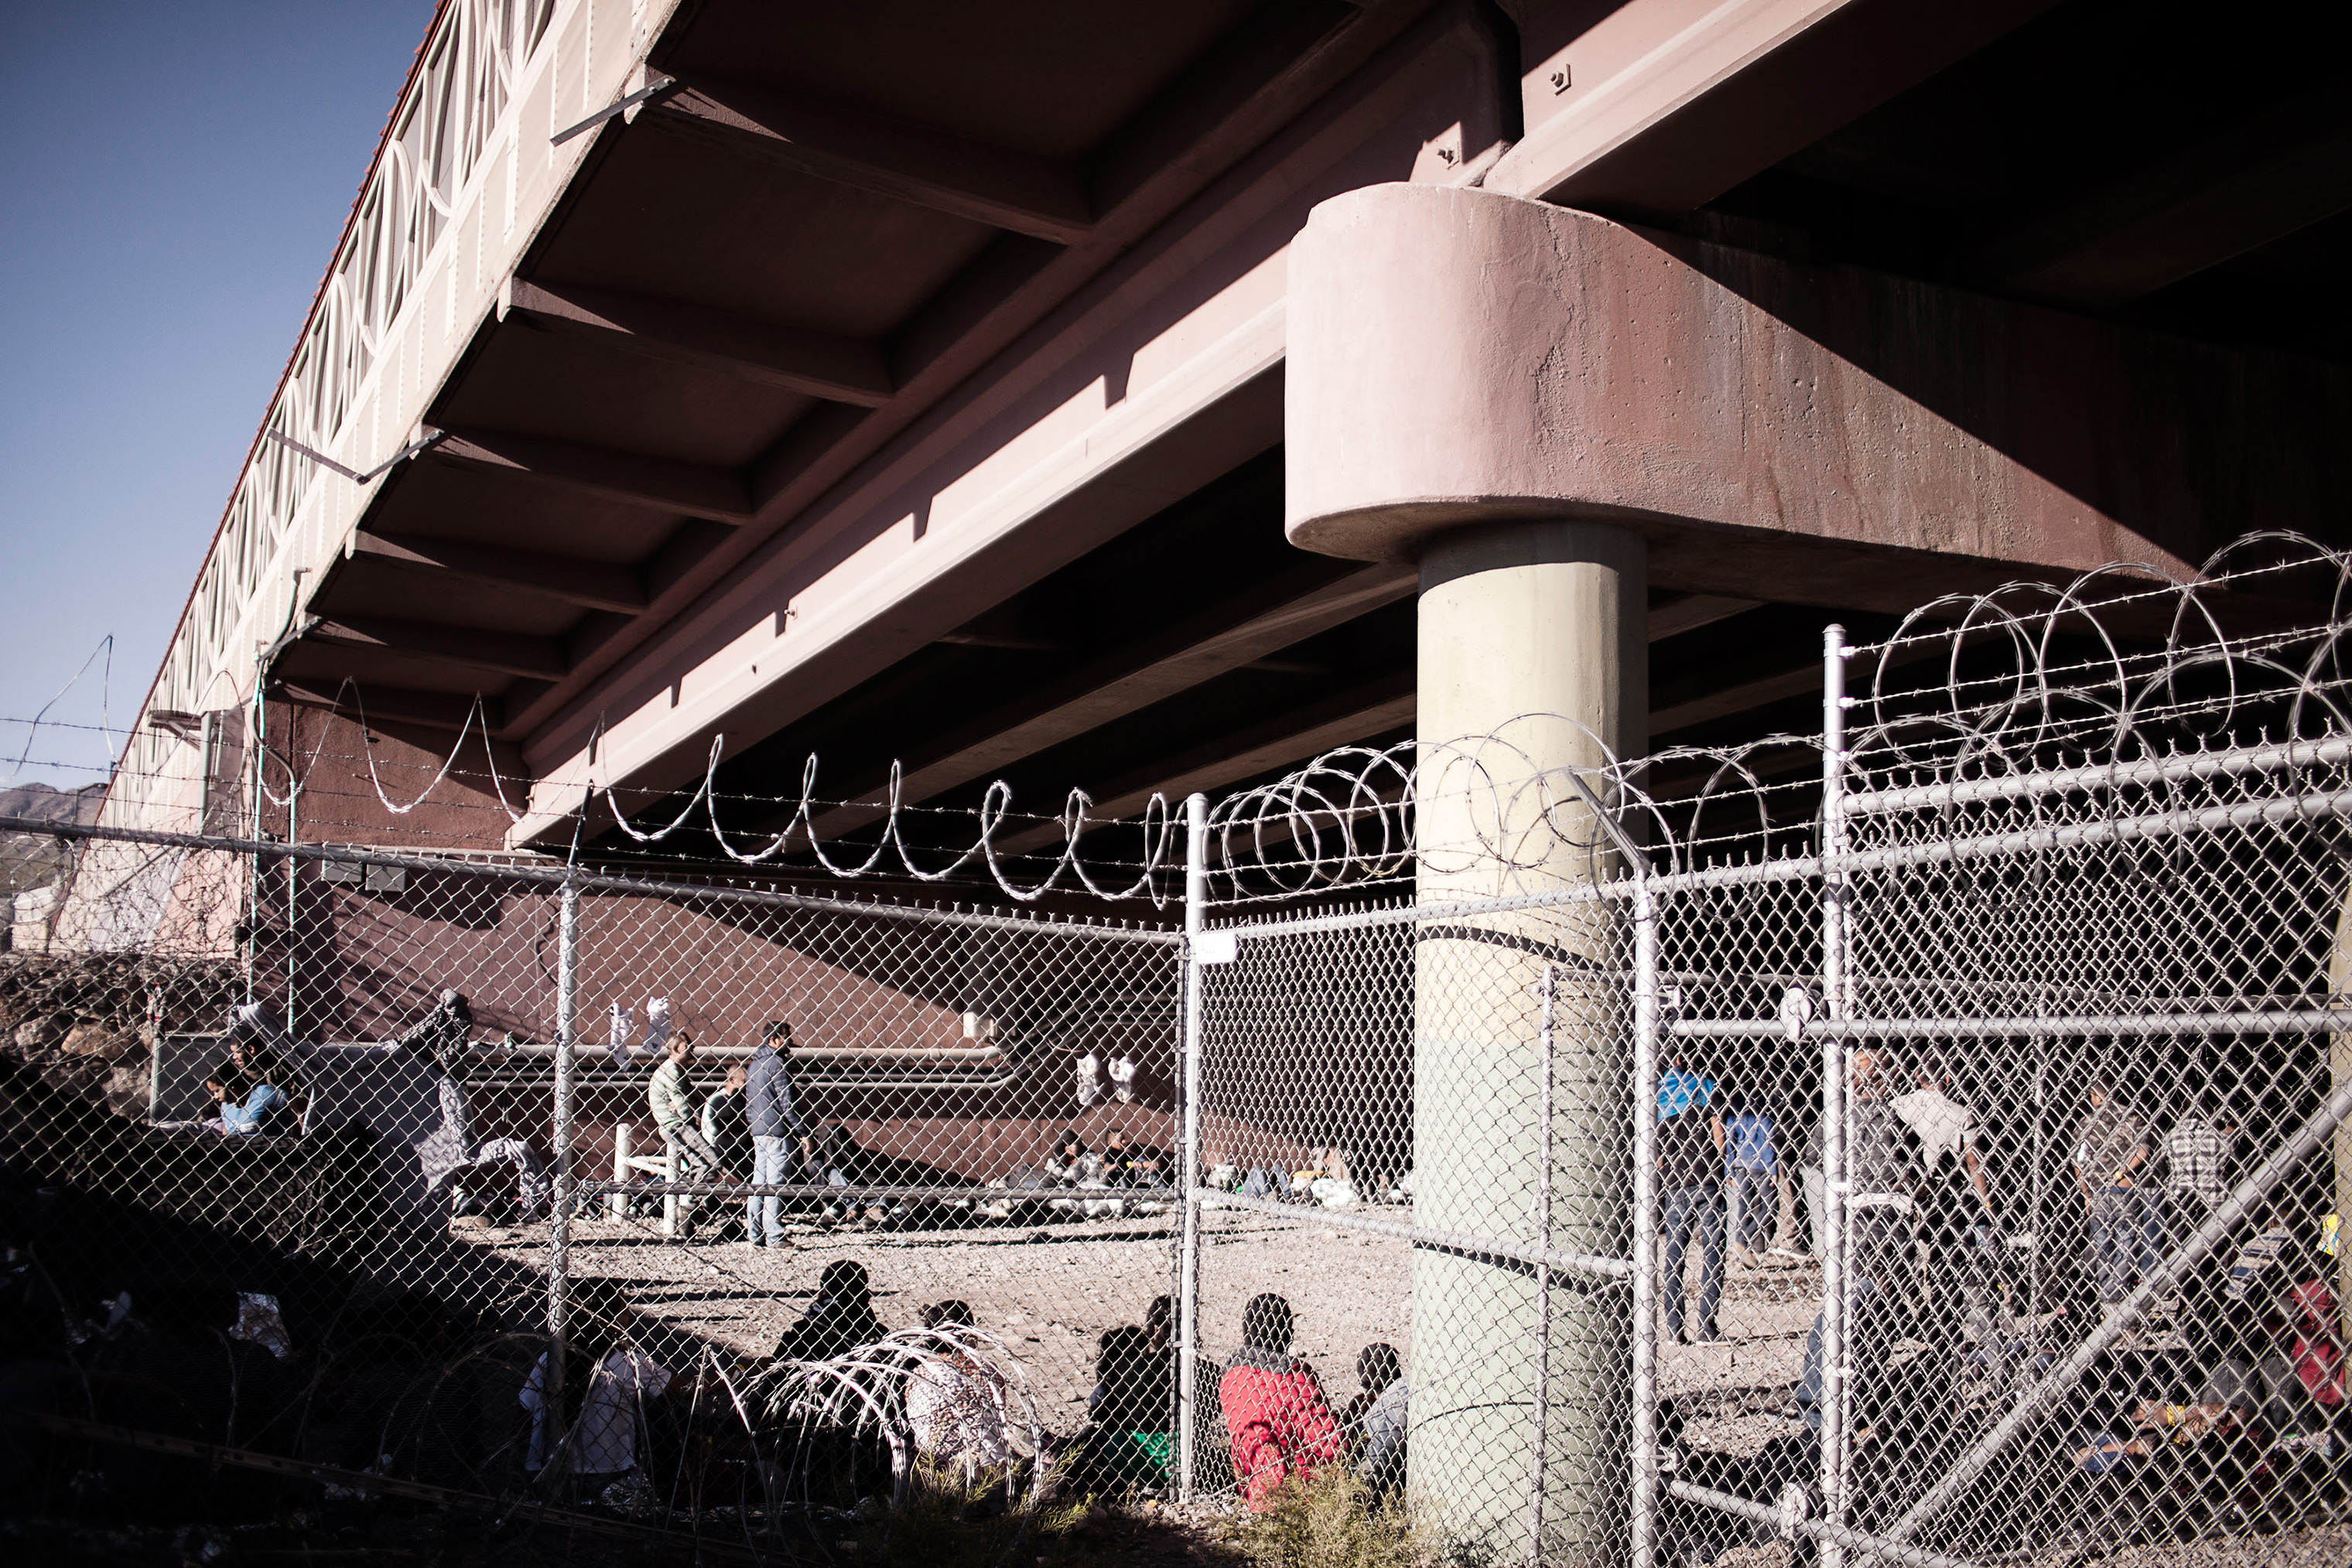 Detained migrants held within temporary fencing underneath the Paso Del Norte Bridge in El Paso, Texas on March 28, 2019. Due to the large volume of apprehensions within the area, the agency has set up a temporary facility within the last month.